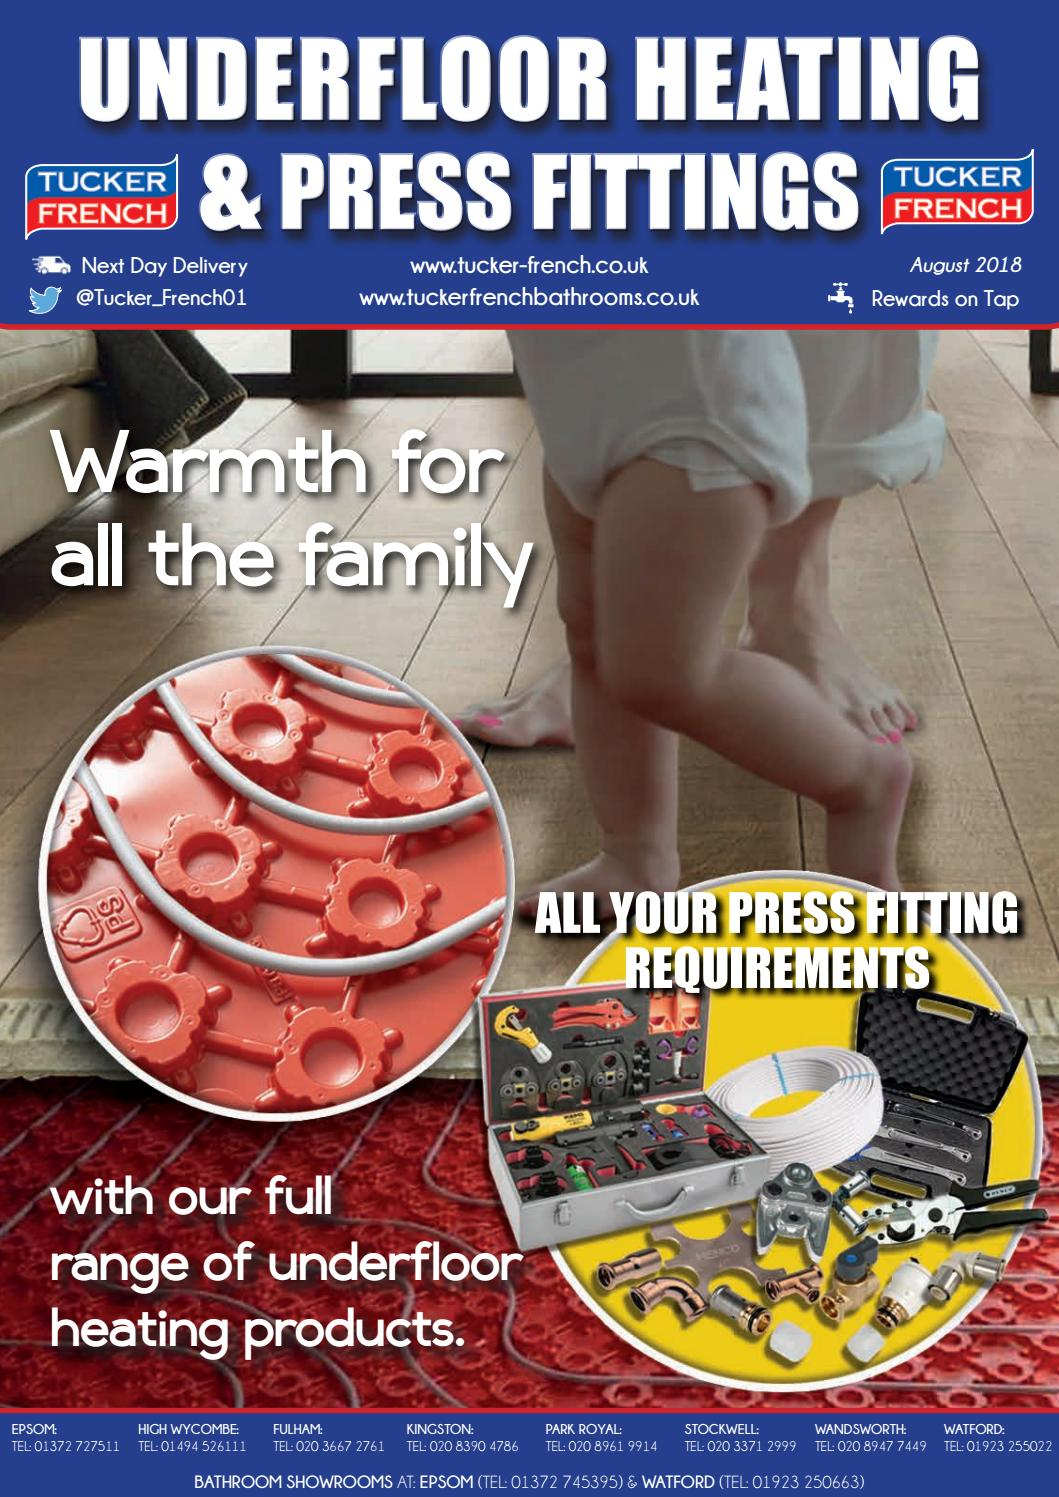 Underfloor Heating and Press Fittings 2018 by tucker-french